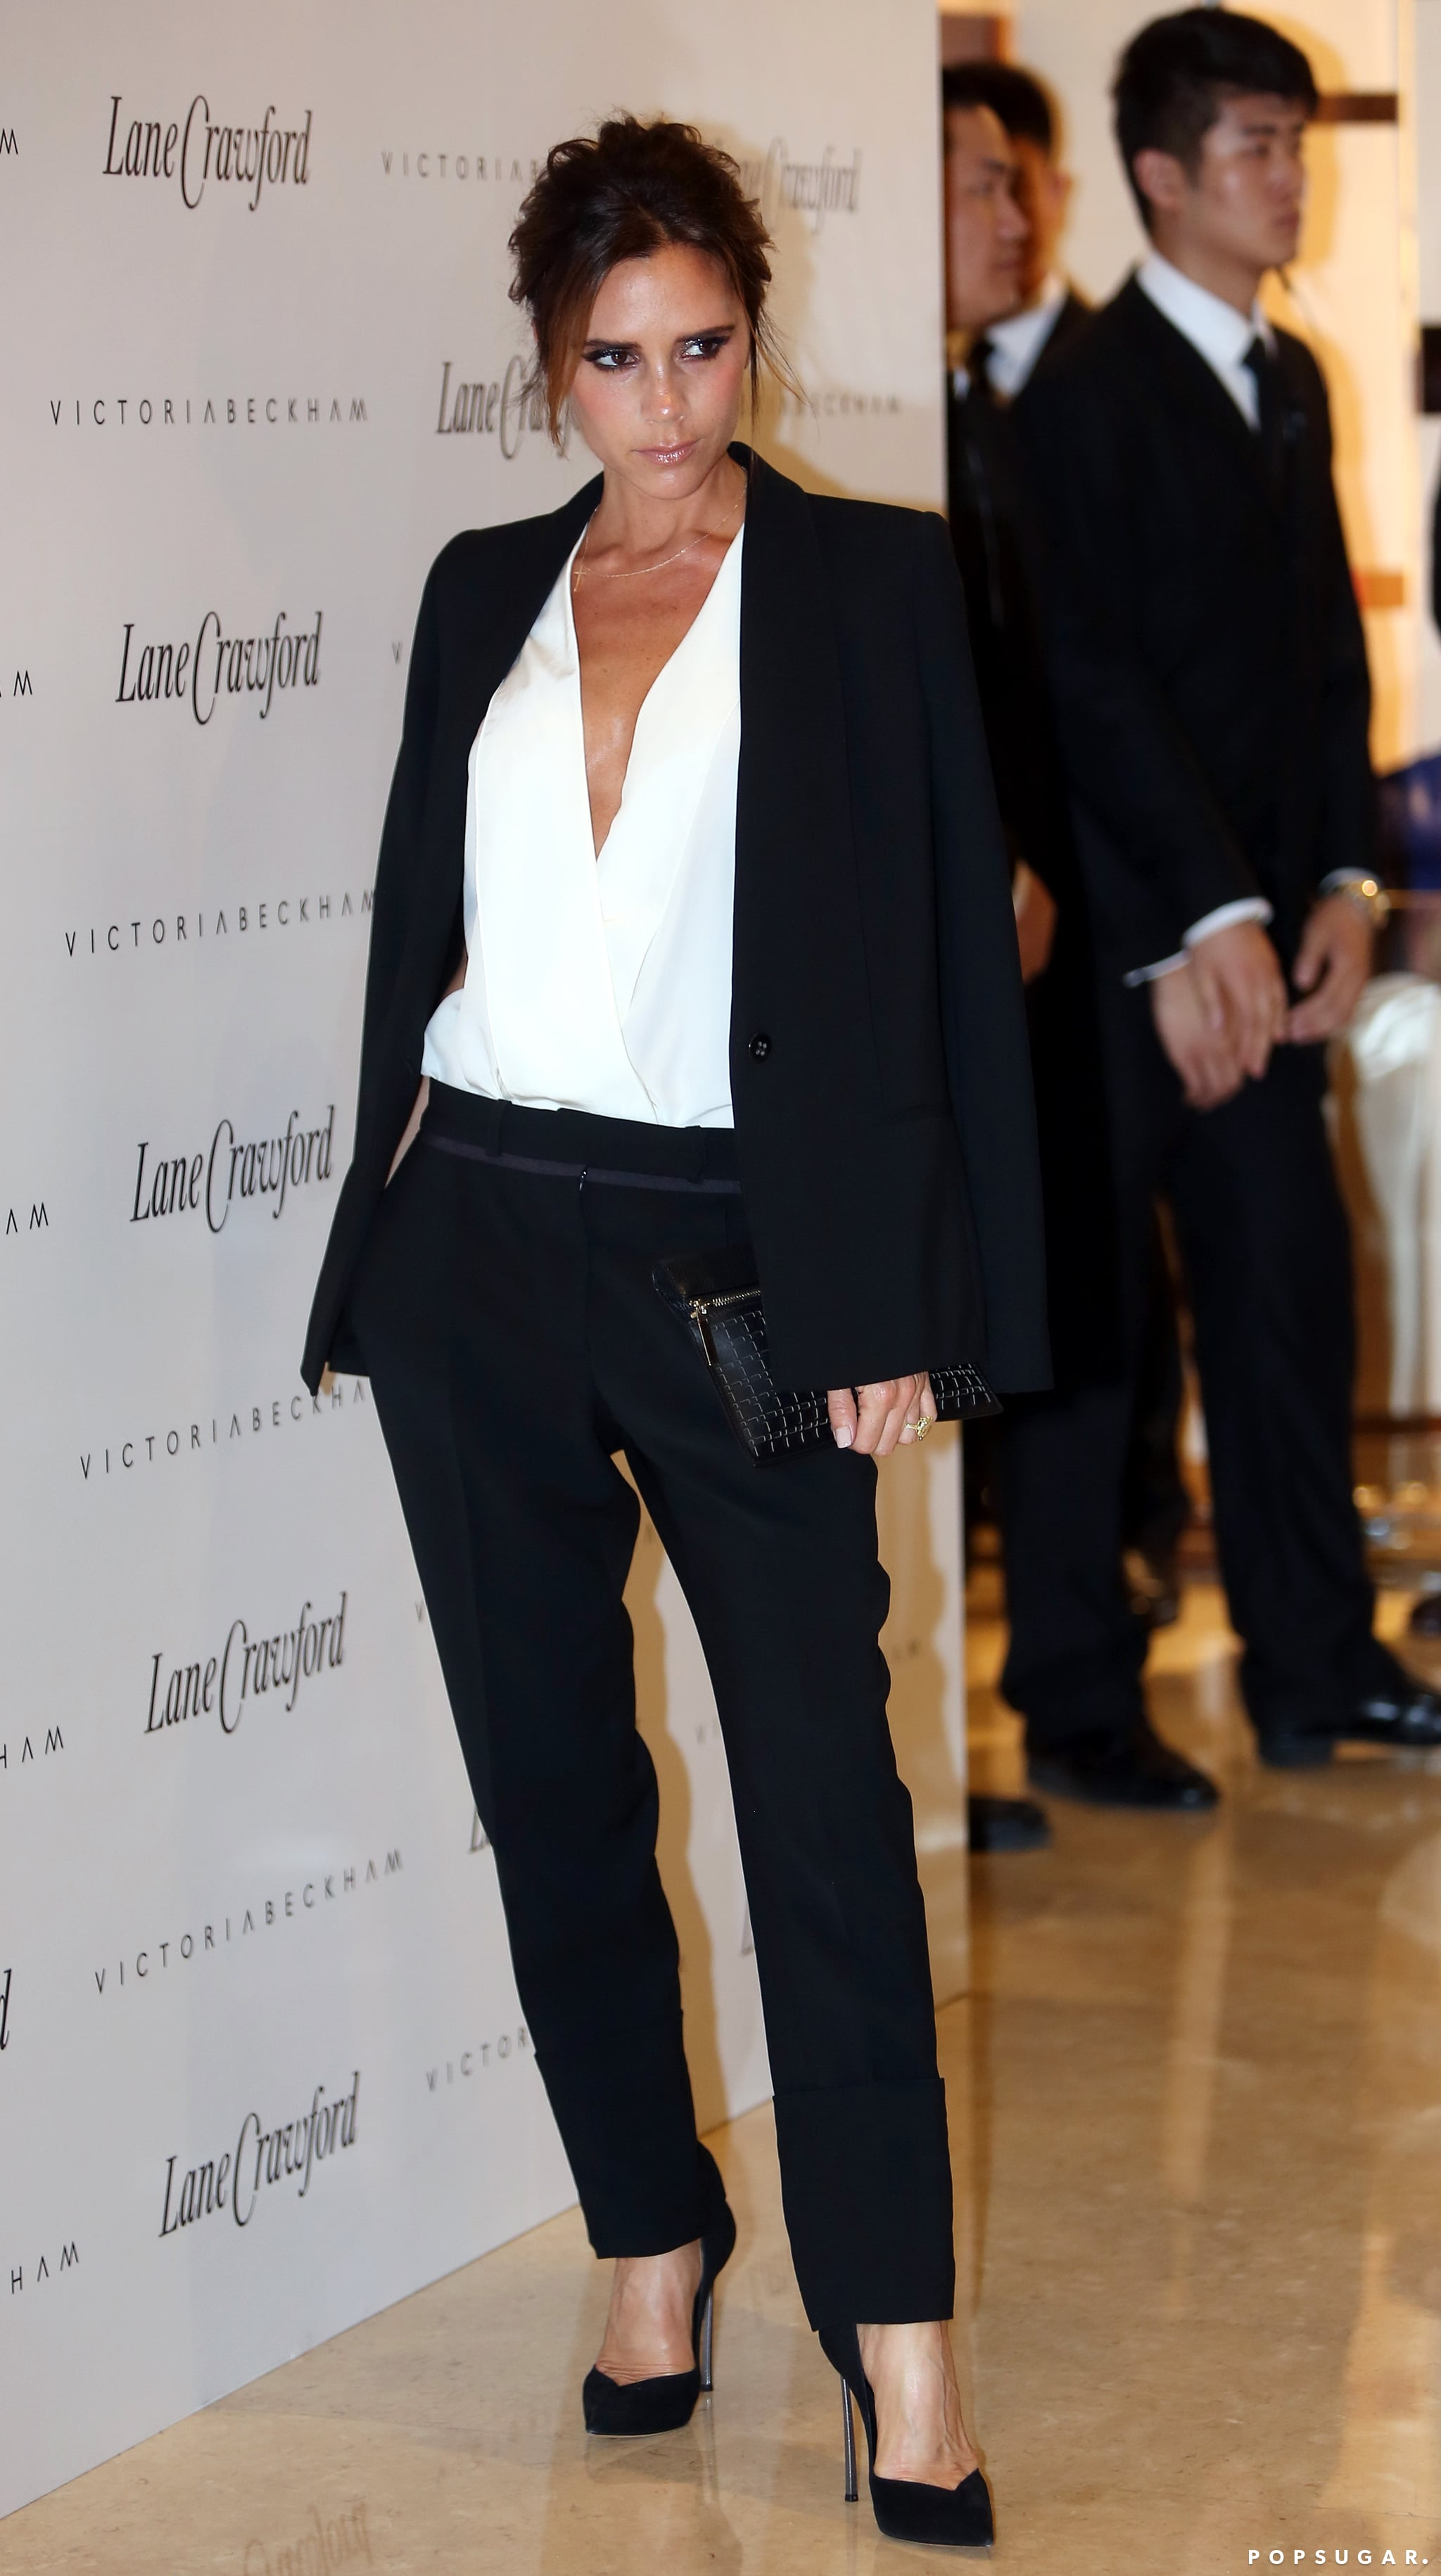 Victoria Beckham launched her fashion line at Lane Crawford in Beijing as one of her many stops during her China tour.